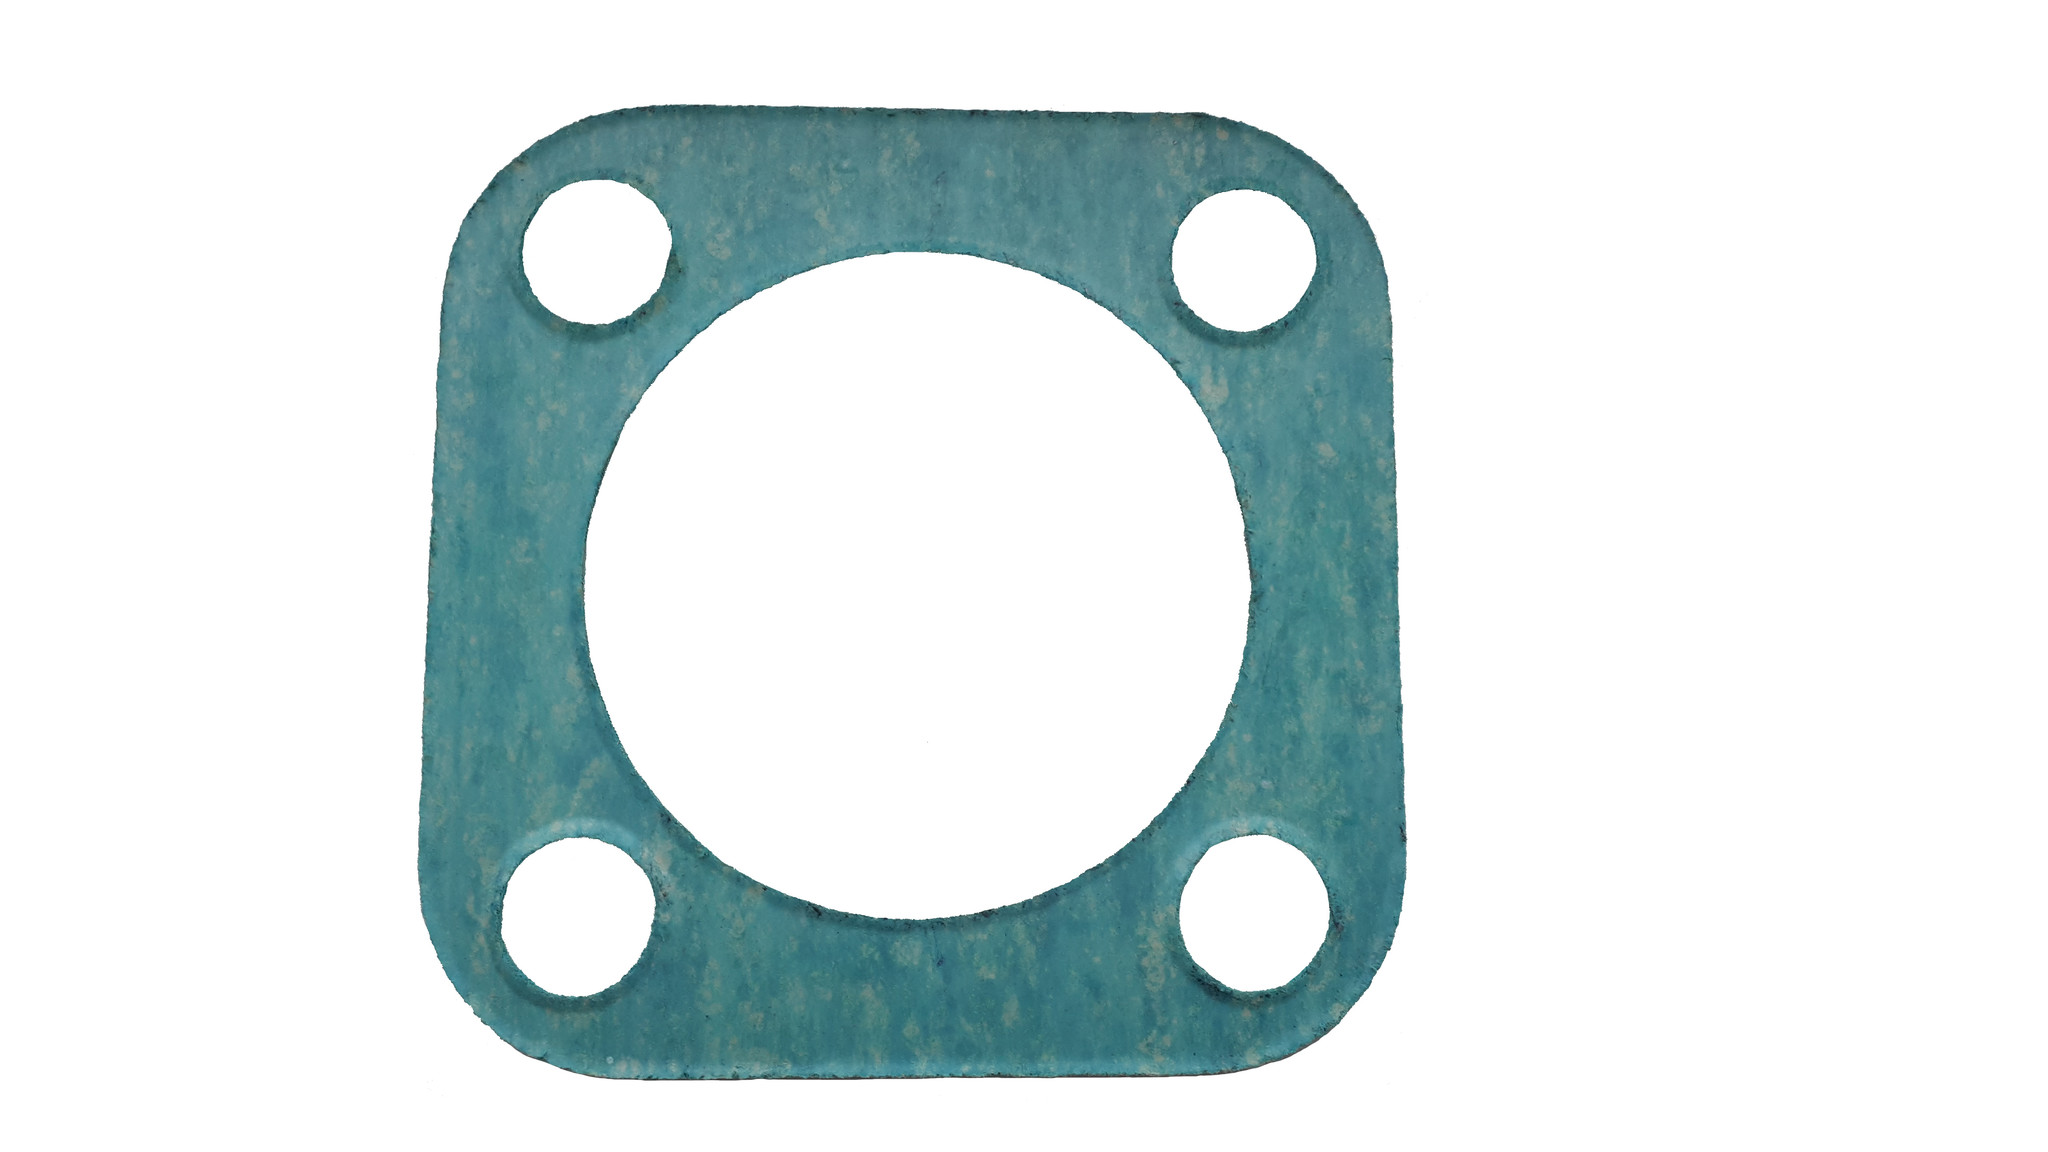 Gasket for Square Flanged Level Switches